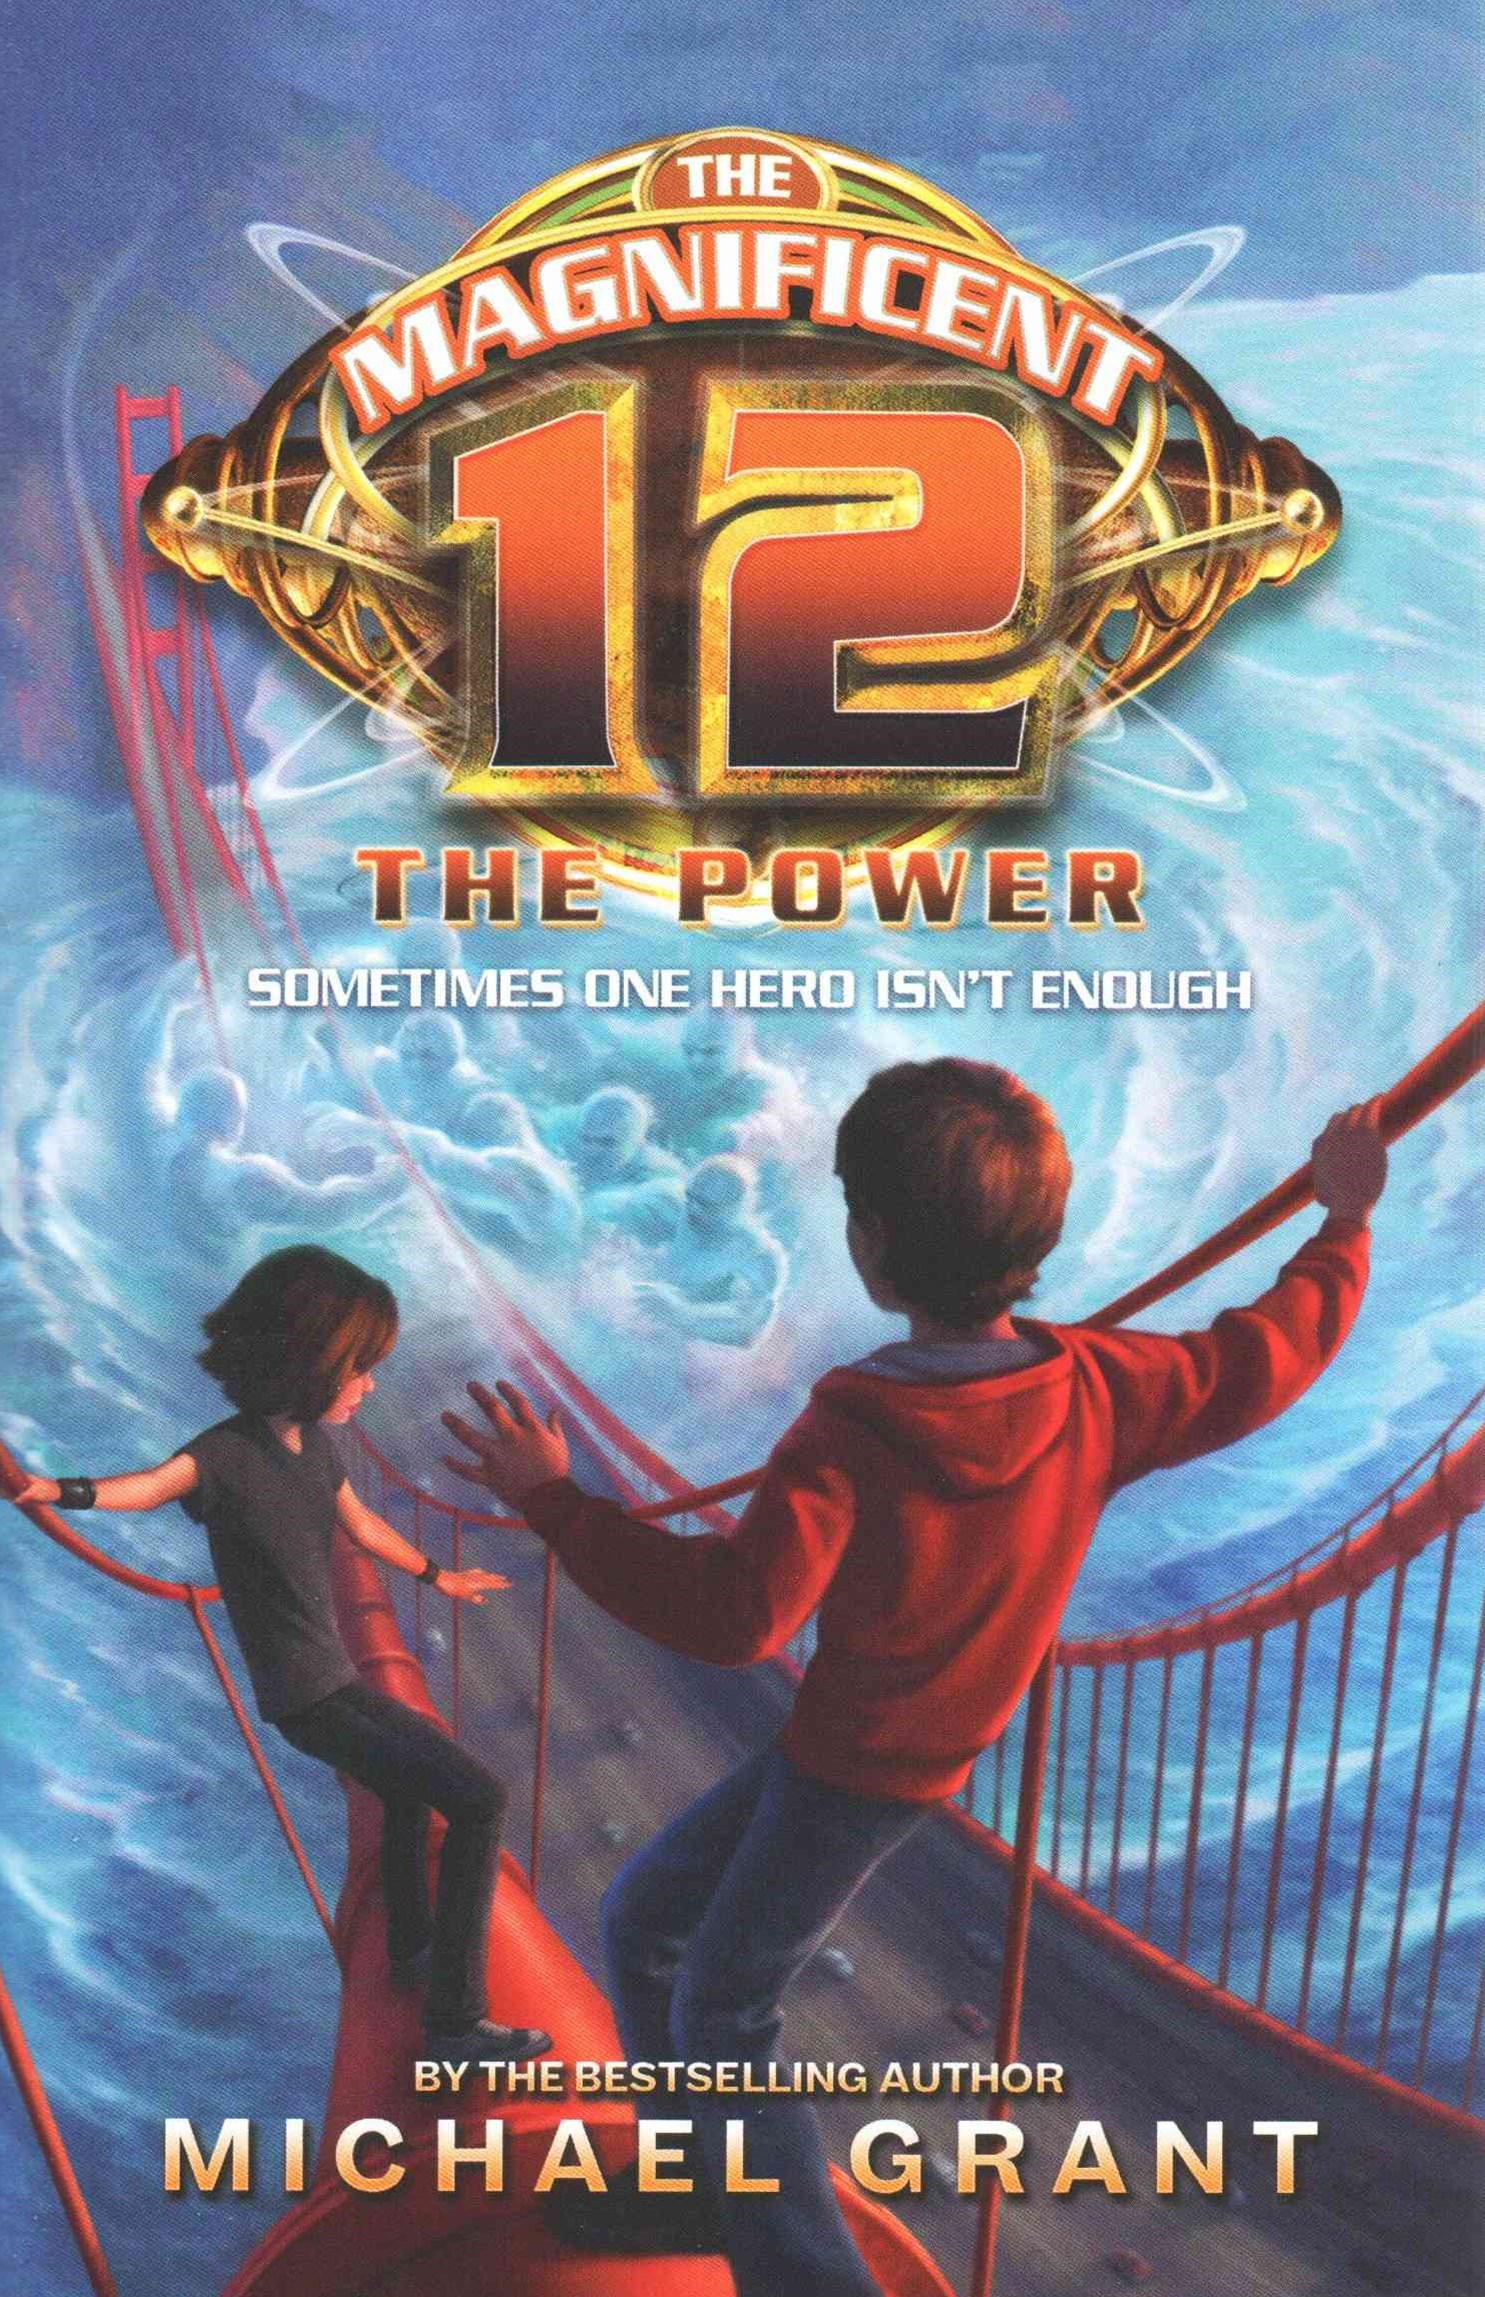 The Magnificent 12 - The Power